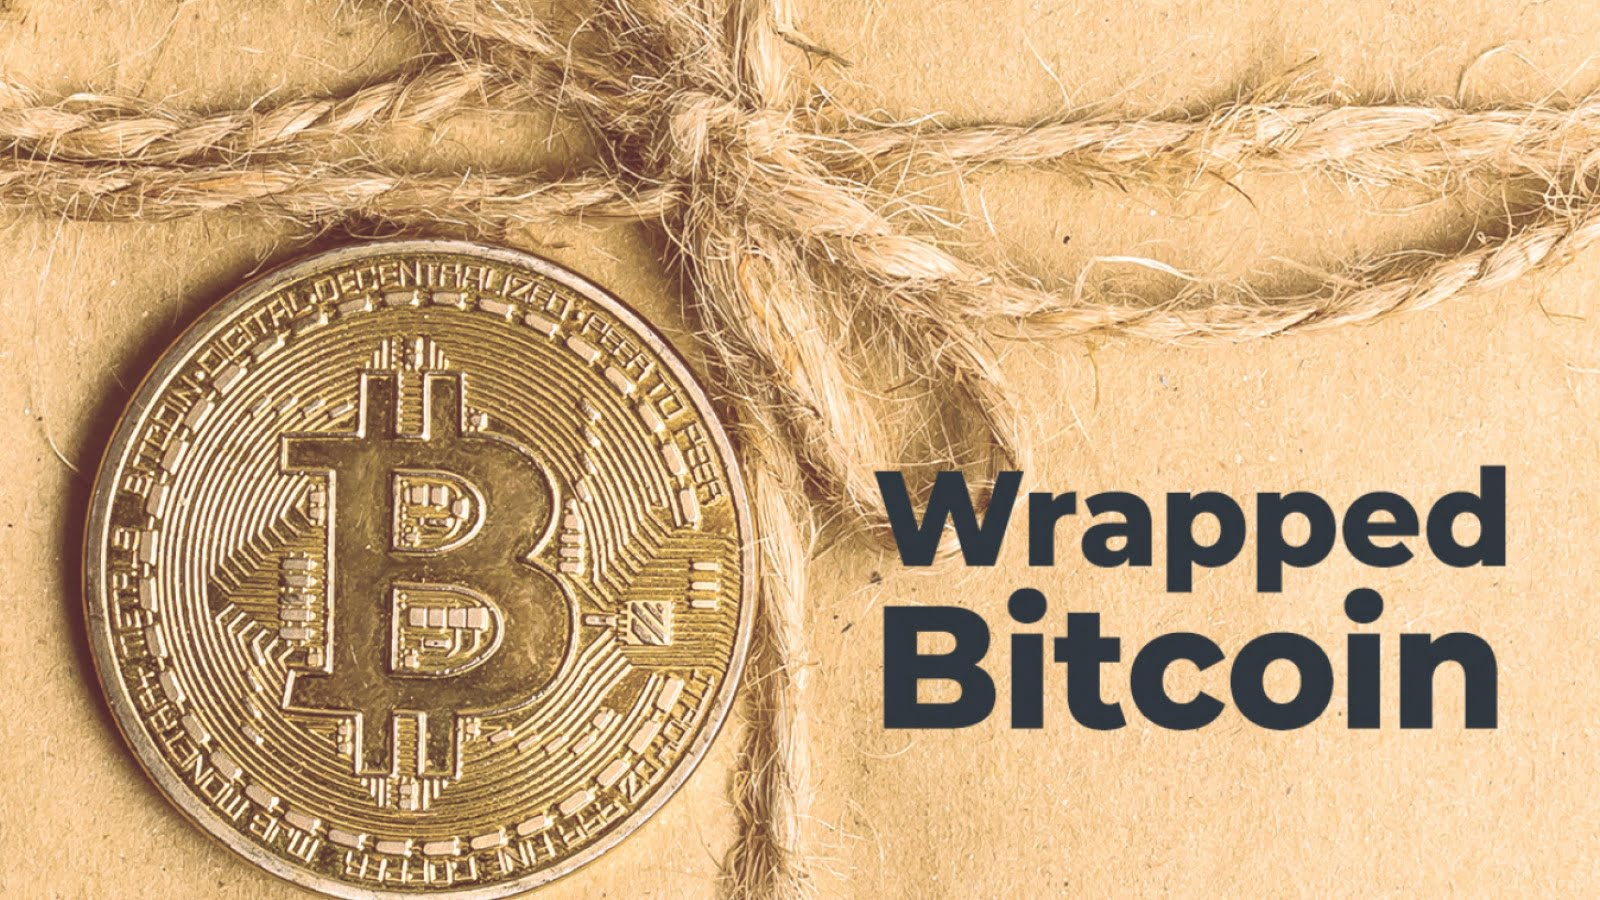 What Is Wrapped Bitcoin (WBTC)? - Bitcoinik